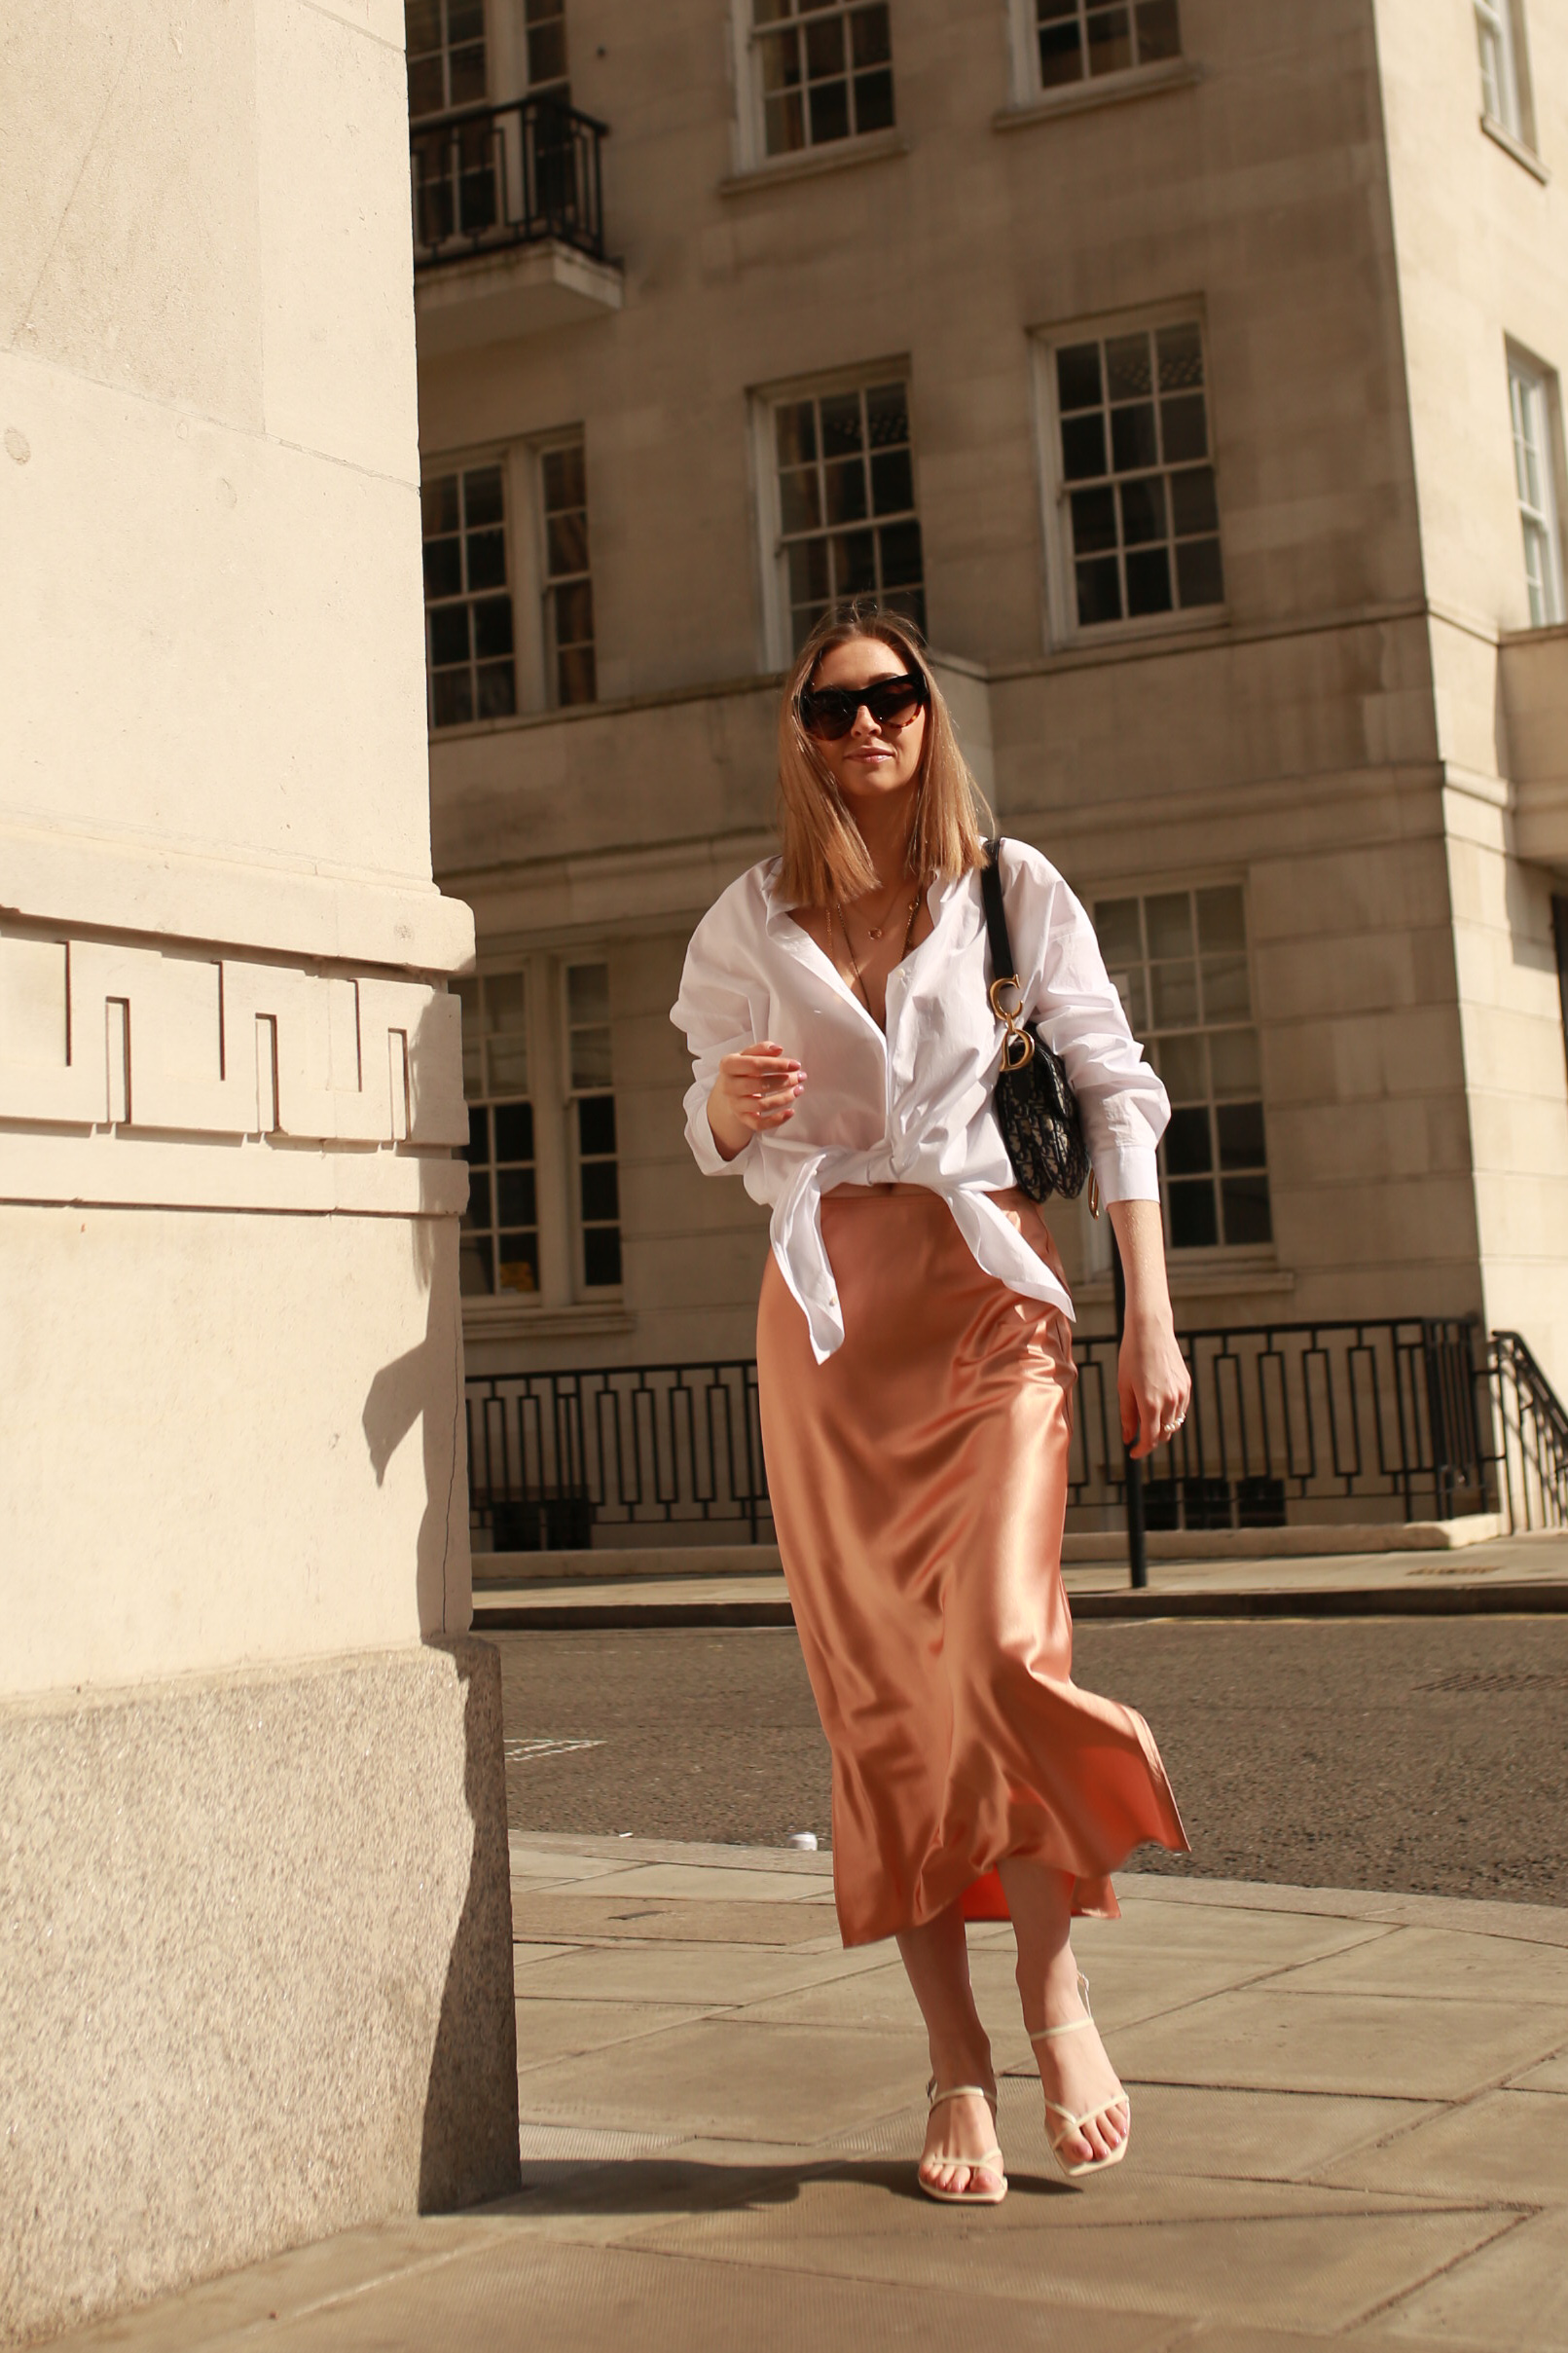 Silk Skirt in champagne colour with oversized white shirt tied into knot in front. Carrying Dior Oblique Saddle bag.